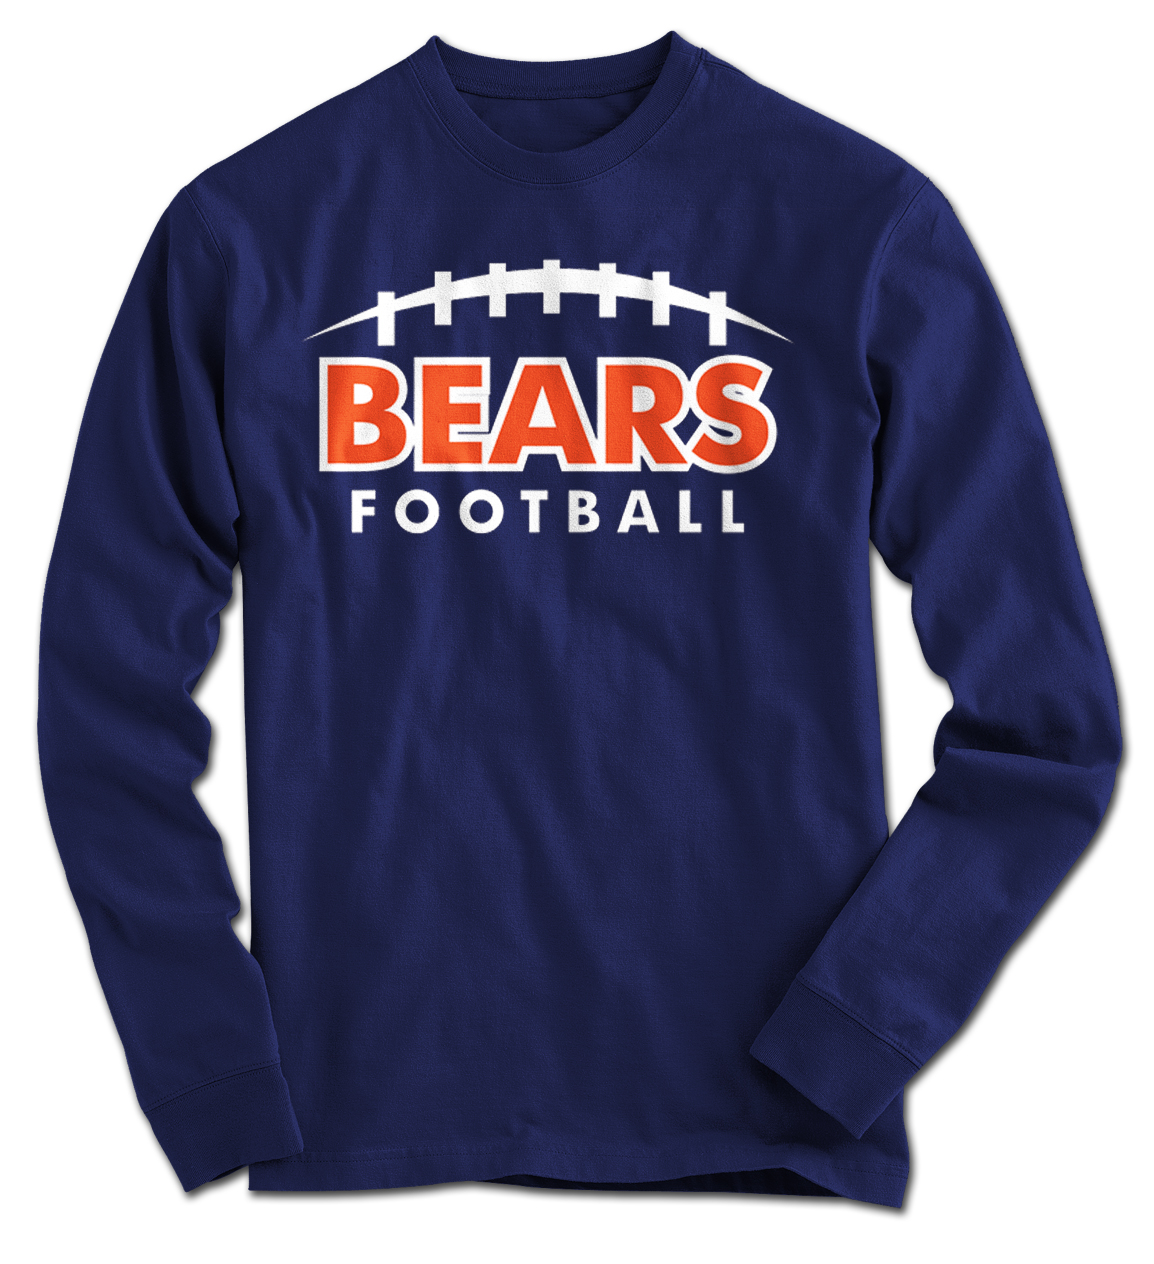 Bears LS 2017 2 - Navy